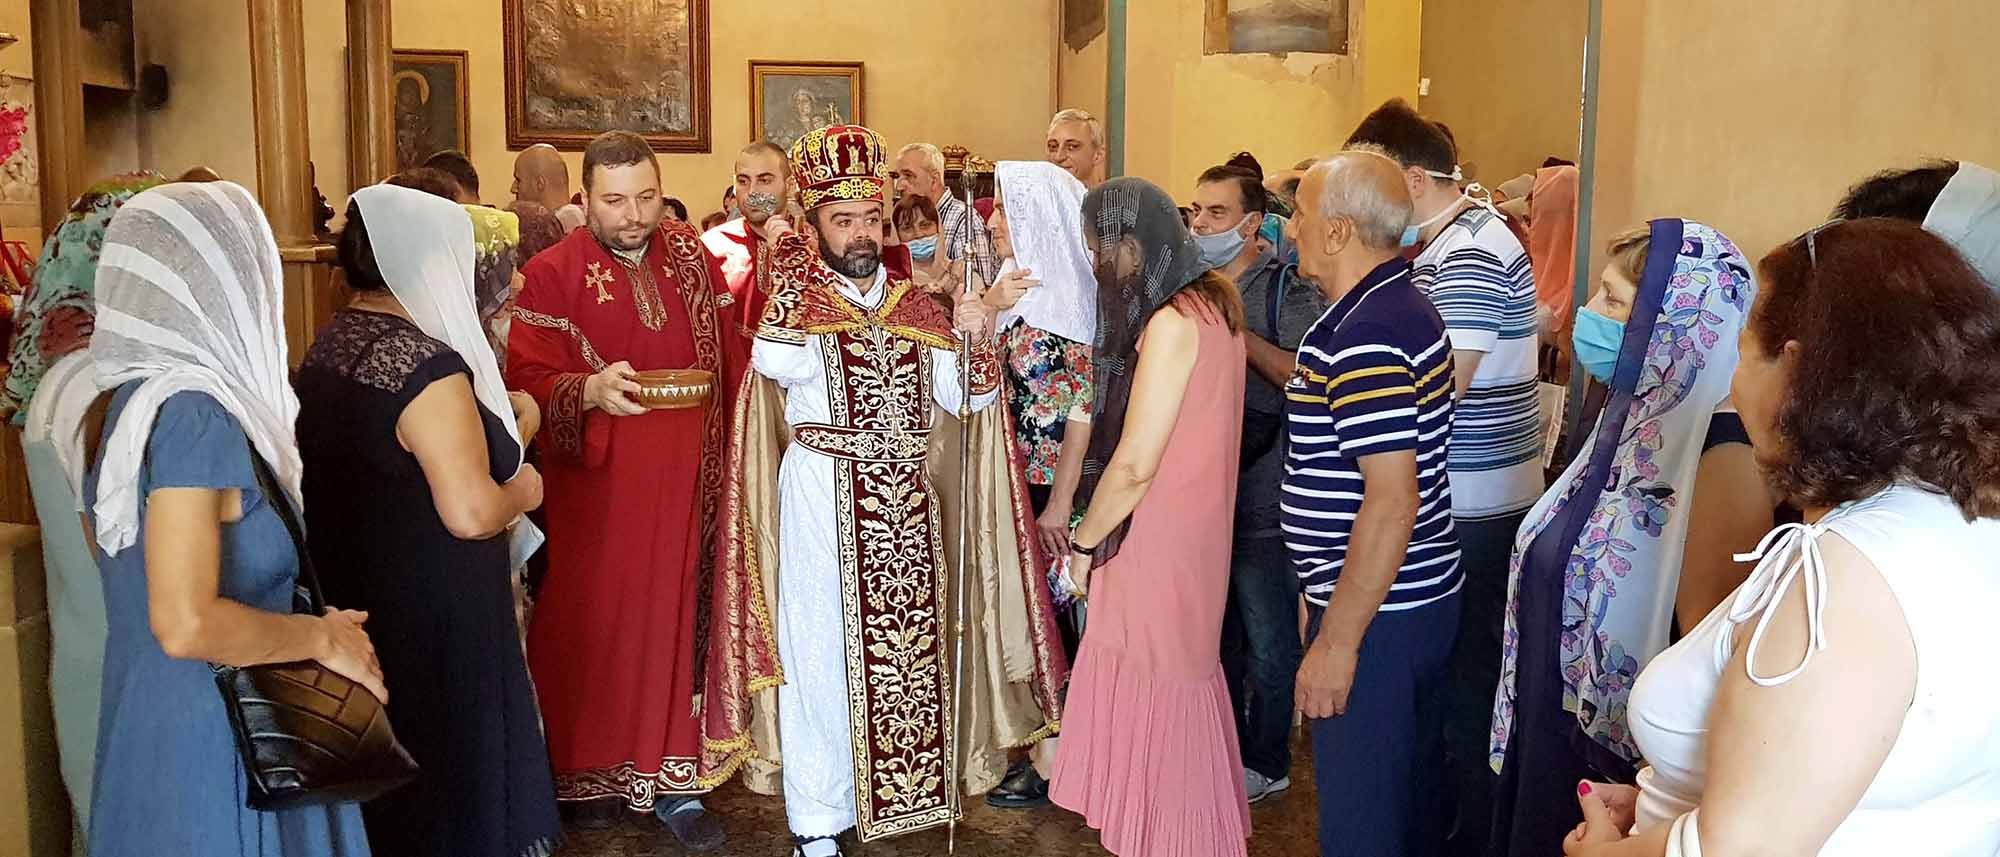 The Feast of Transfiguration of Our Lord Jesus Christ celebrated at the Armenian Diocese in Georgia